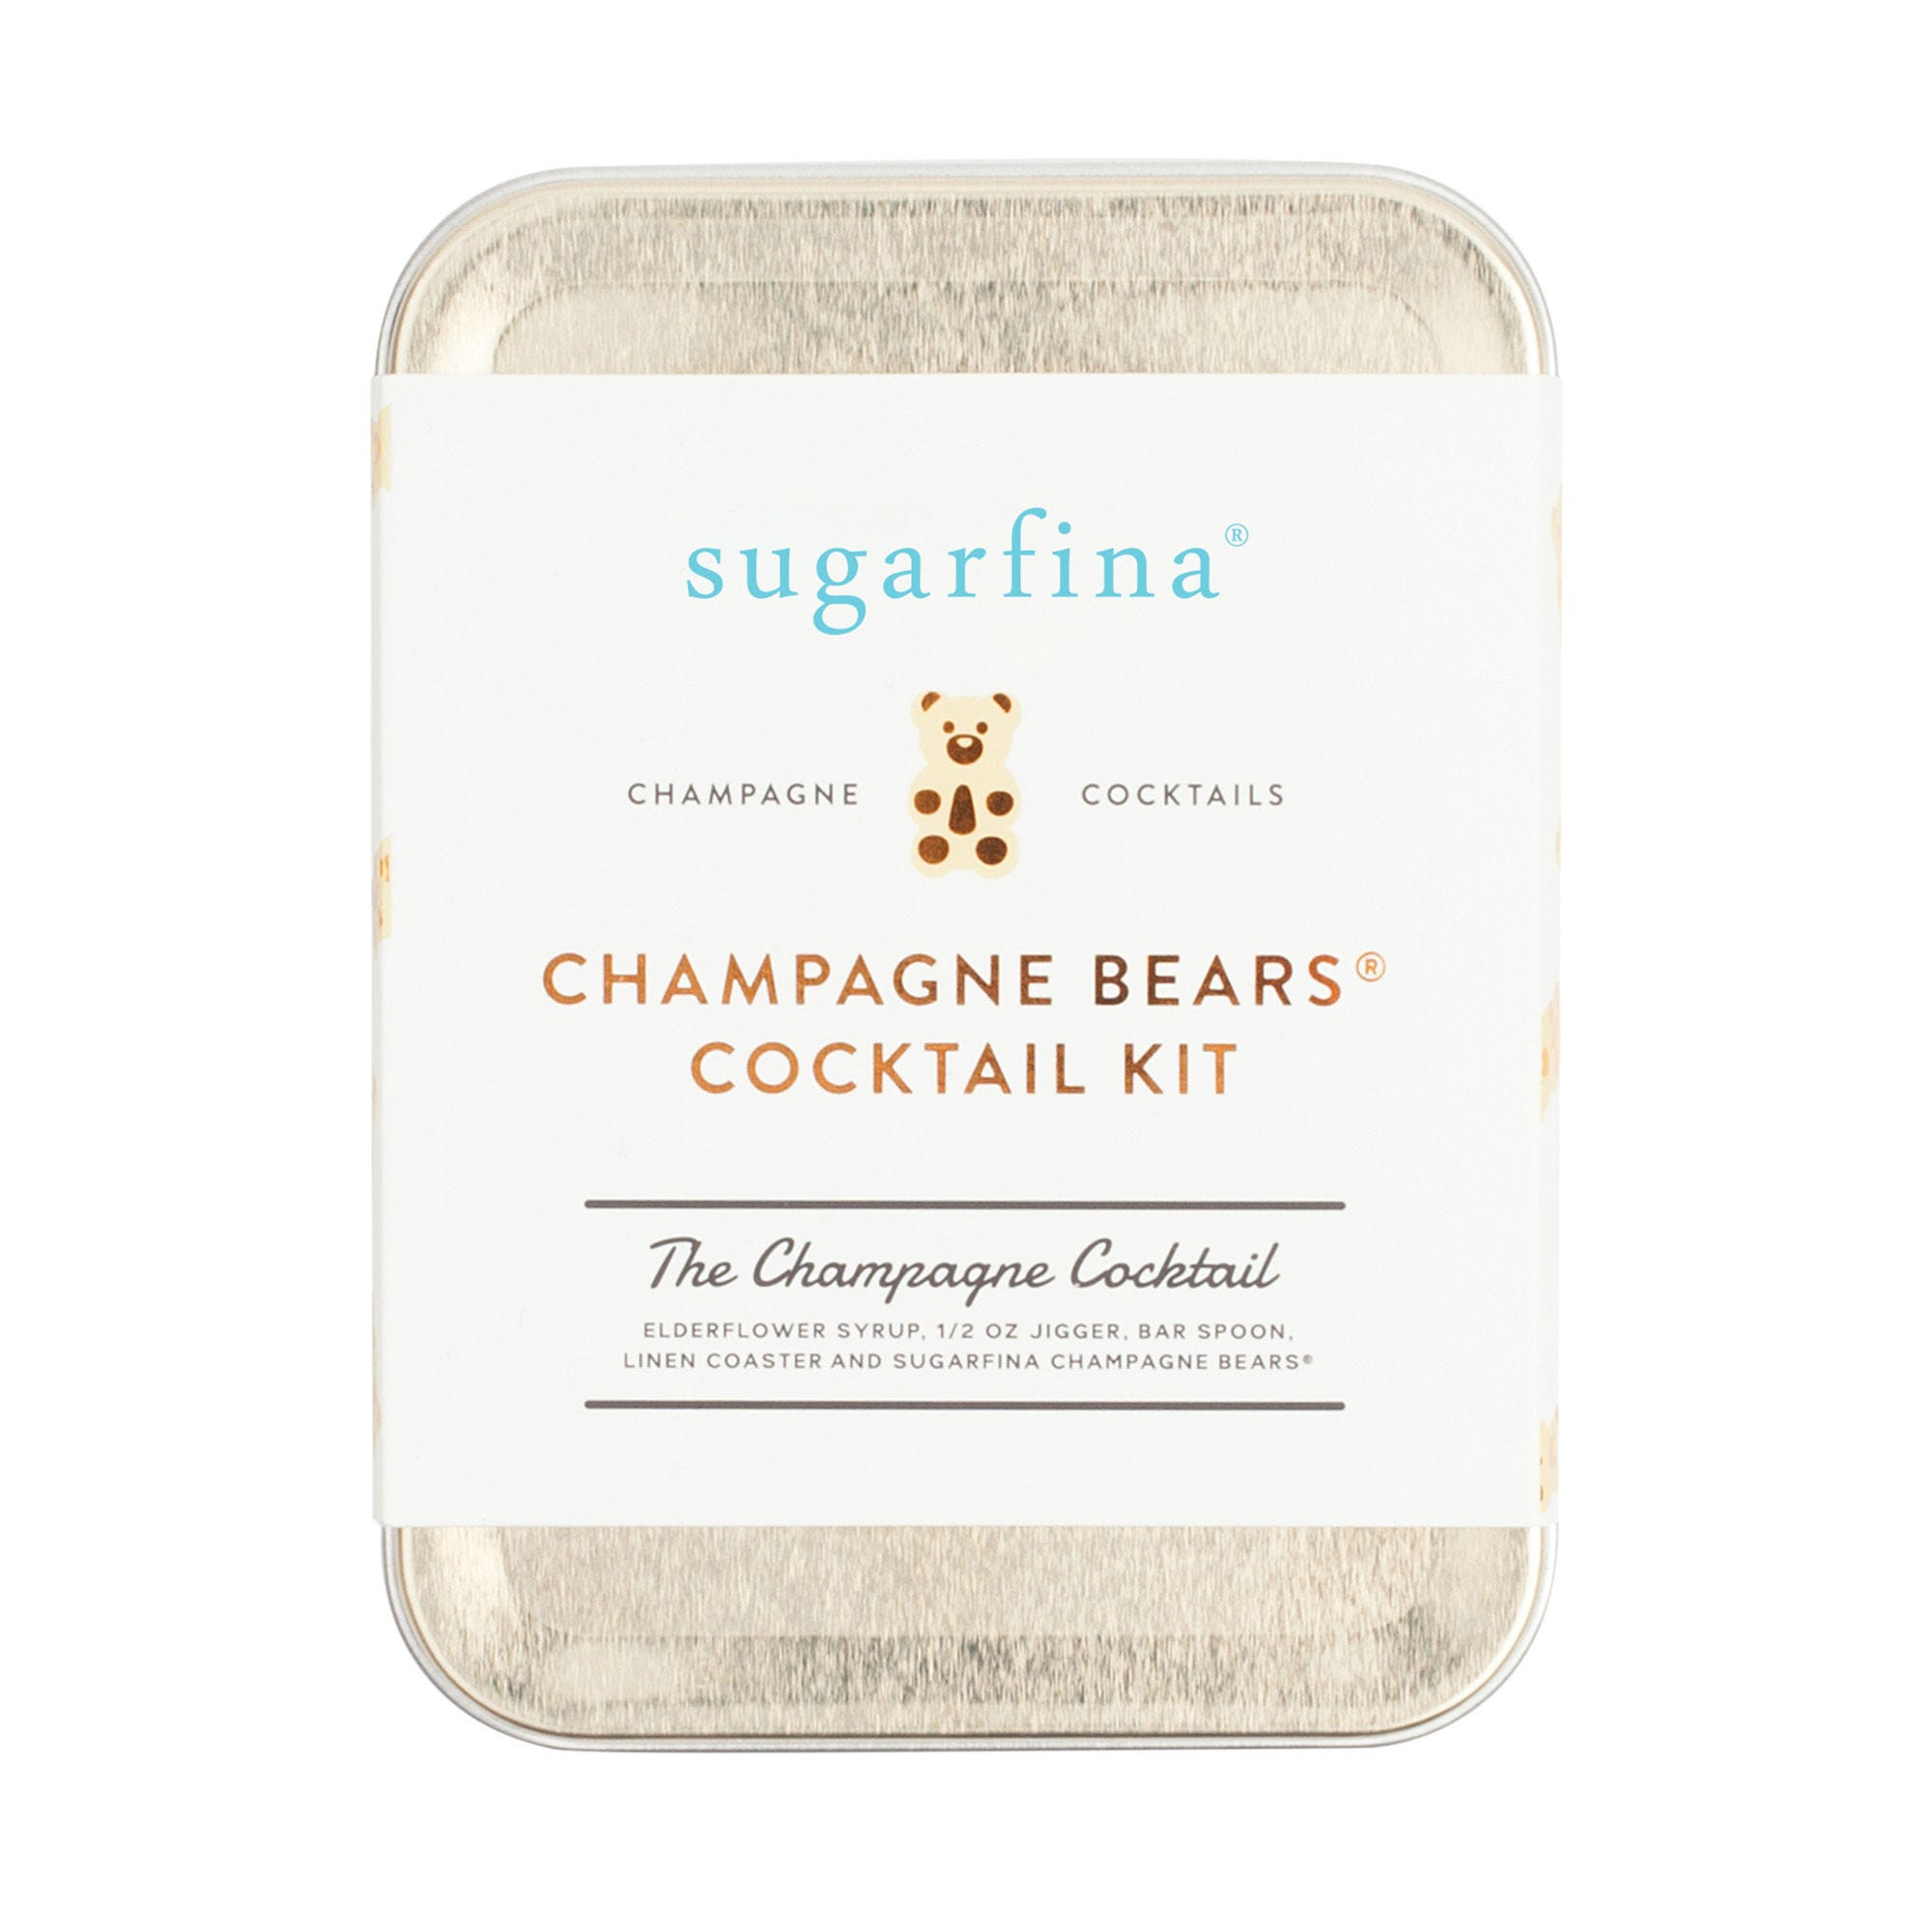 Champagne Bears® Cocktail Kit